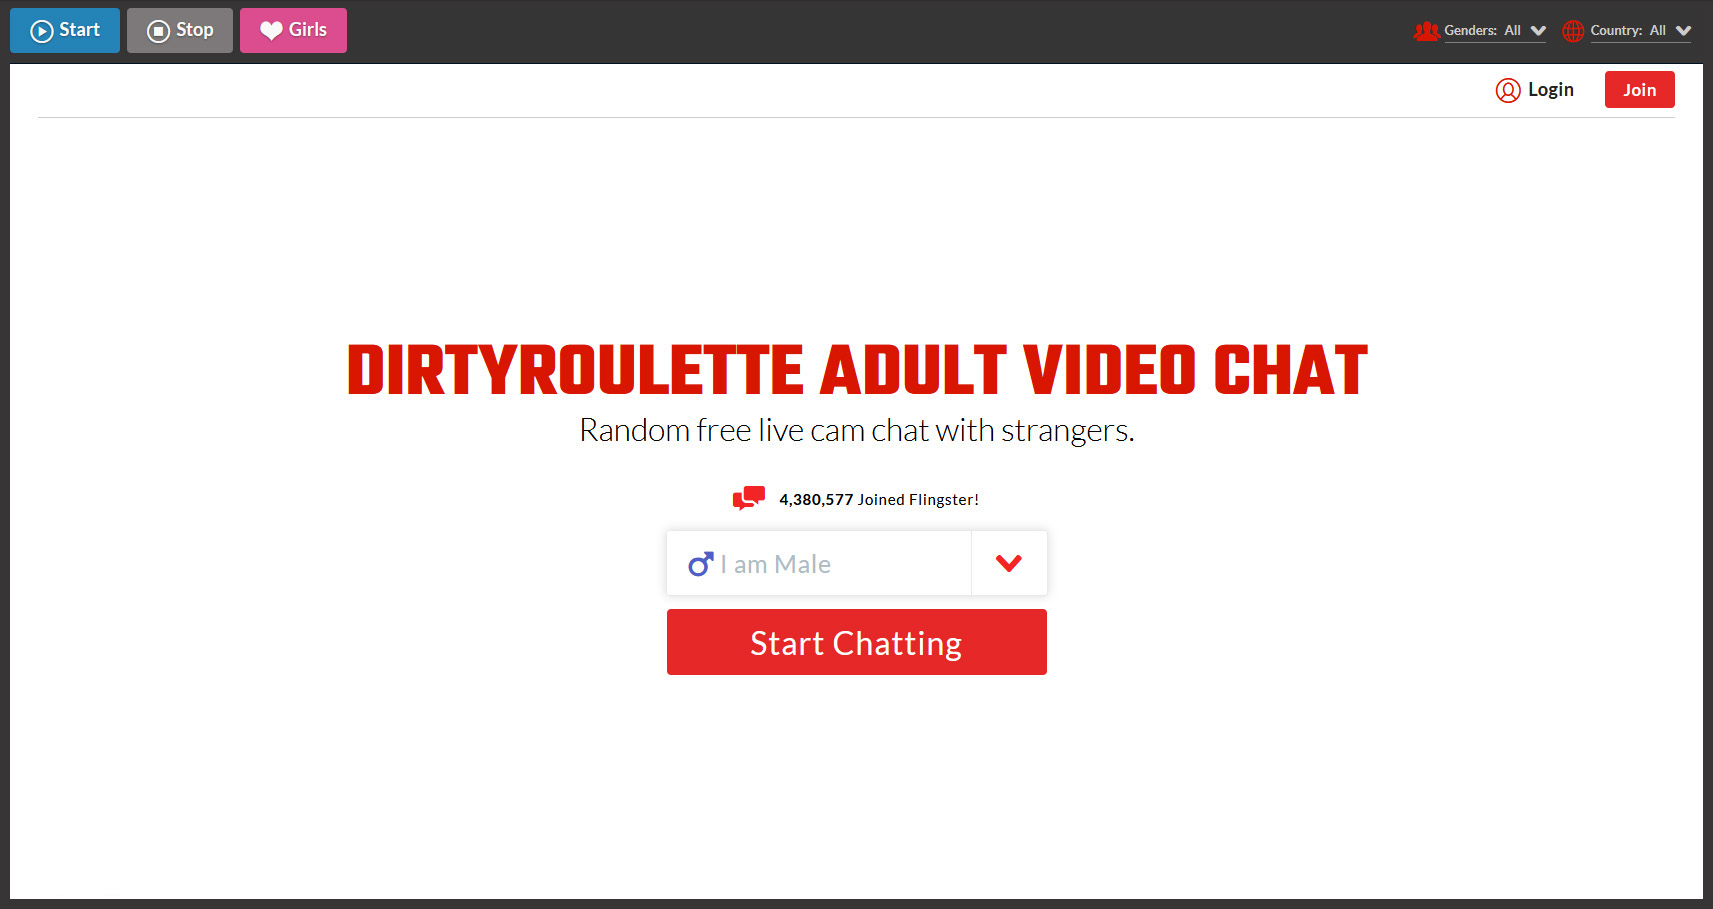 Dirtyroulete Dirty Roulette: